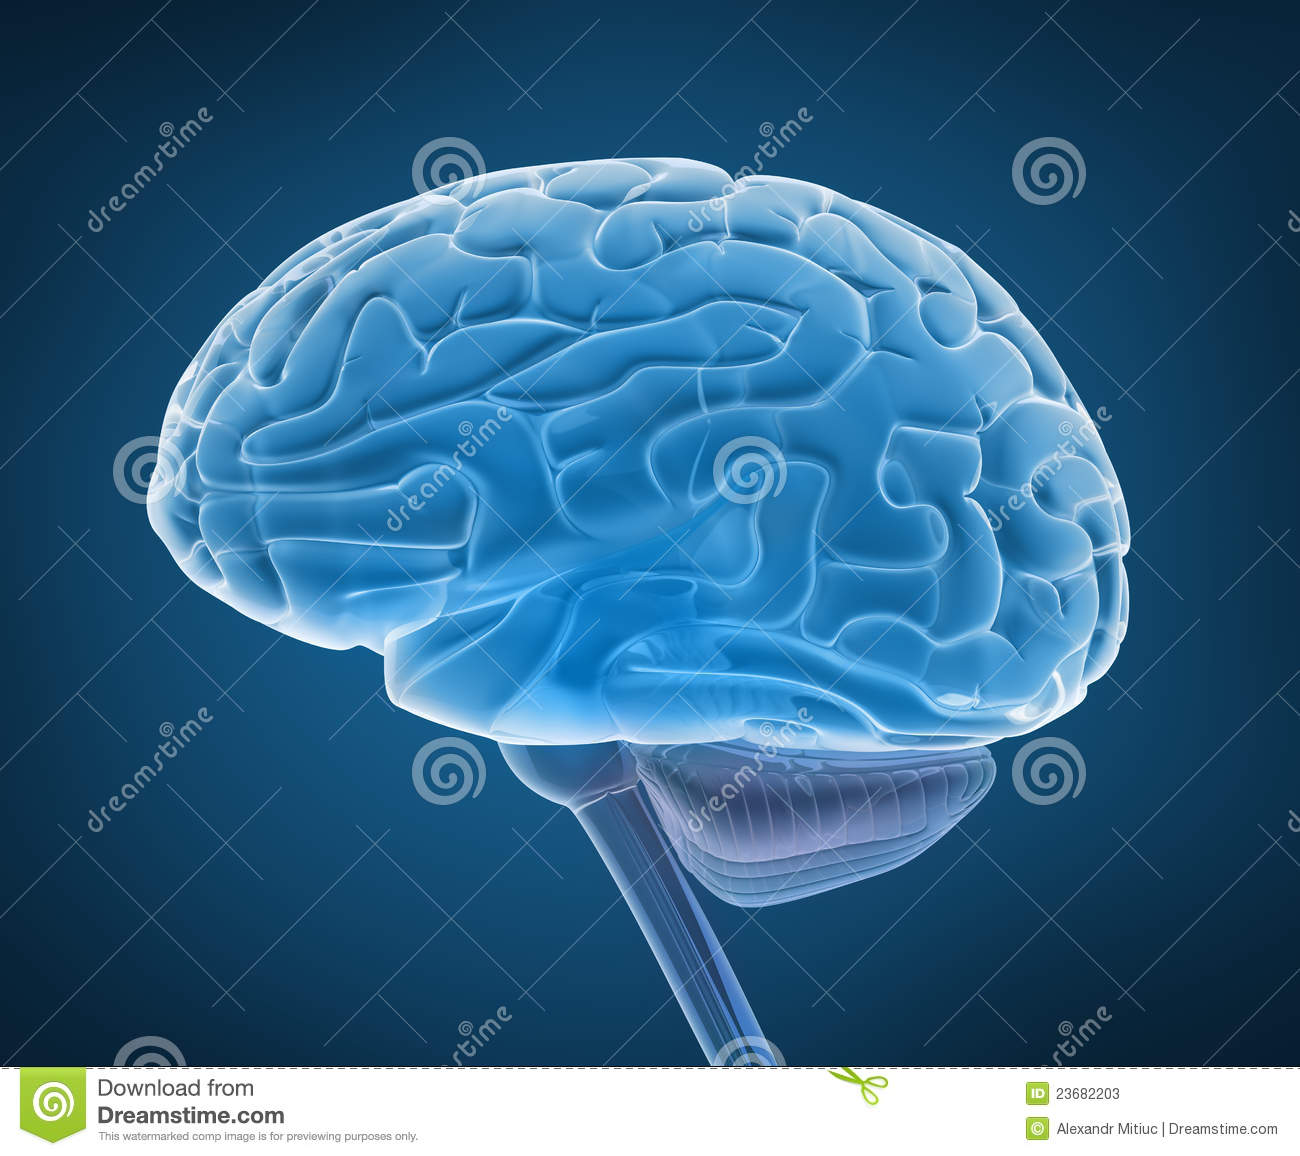 Human brain and spinal cord stock illustration illustration of human brain and spinal cord ccuart Gallery